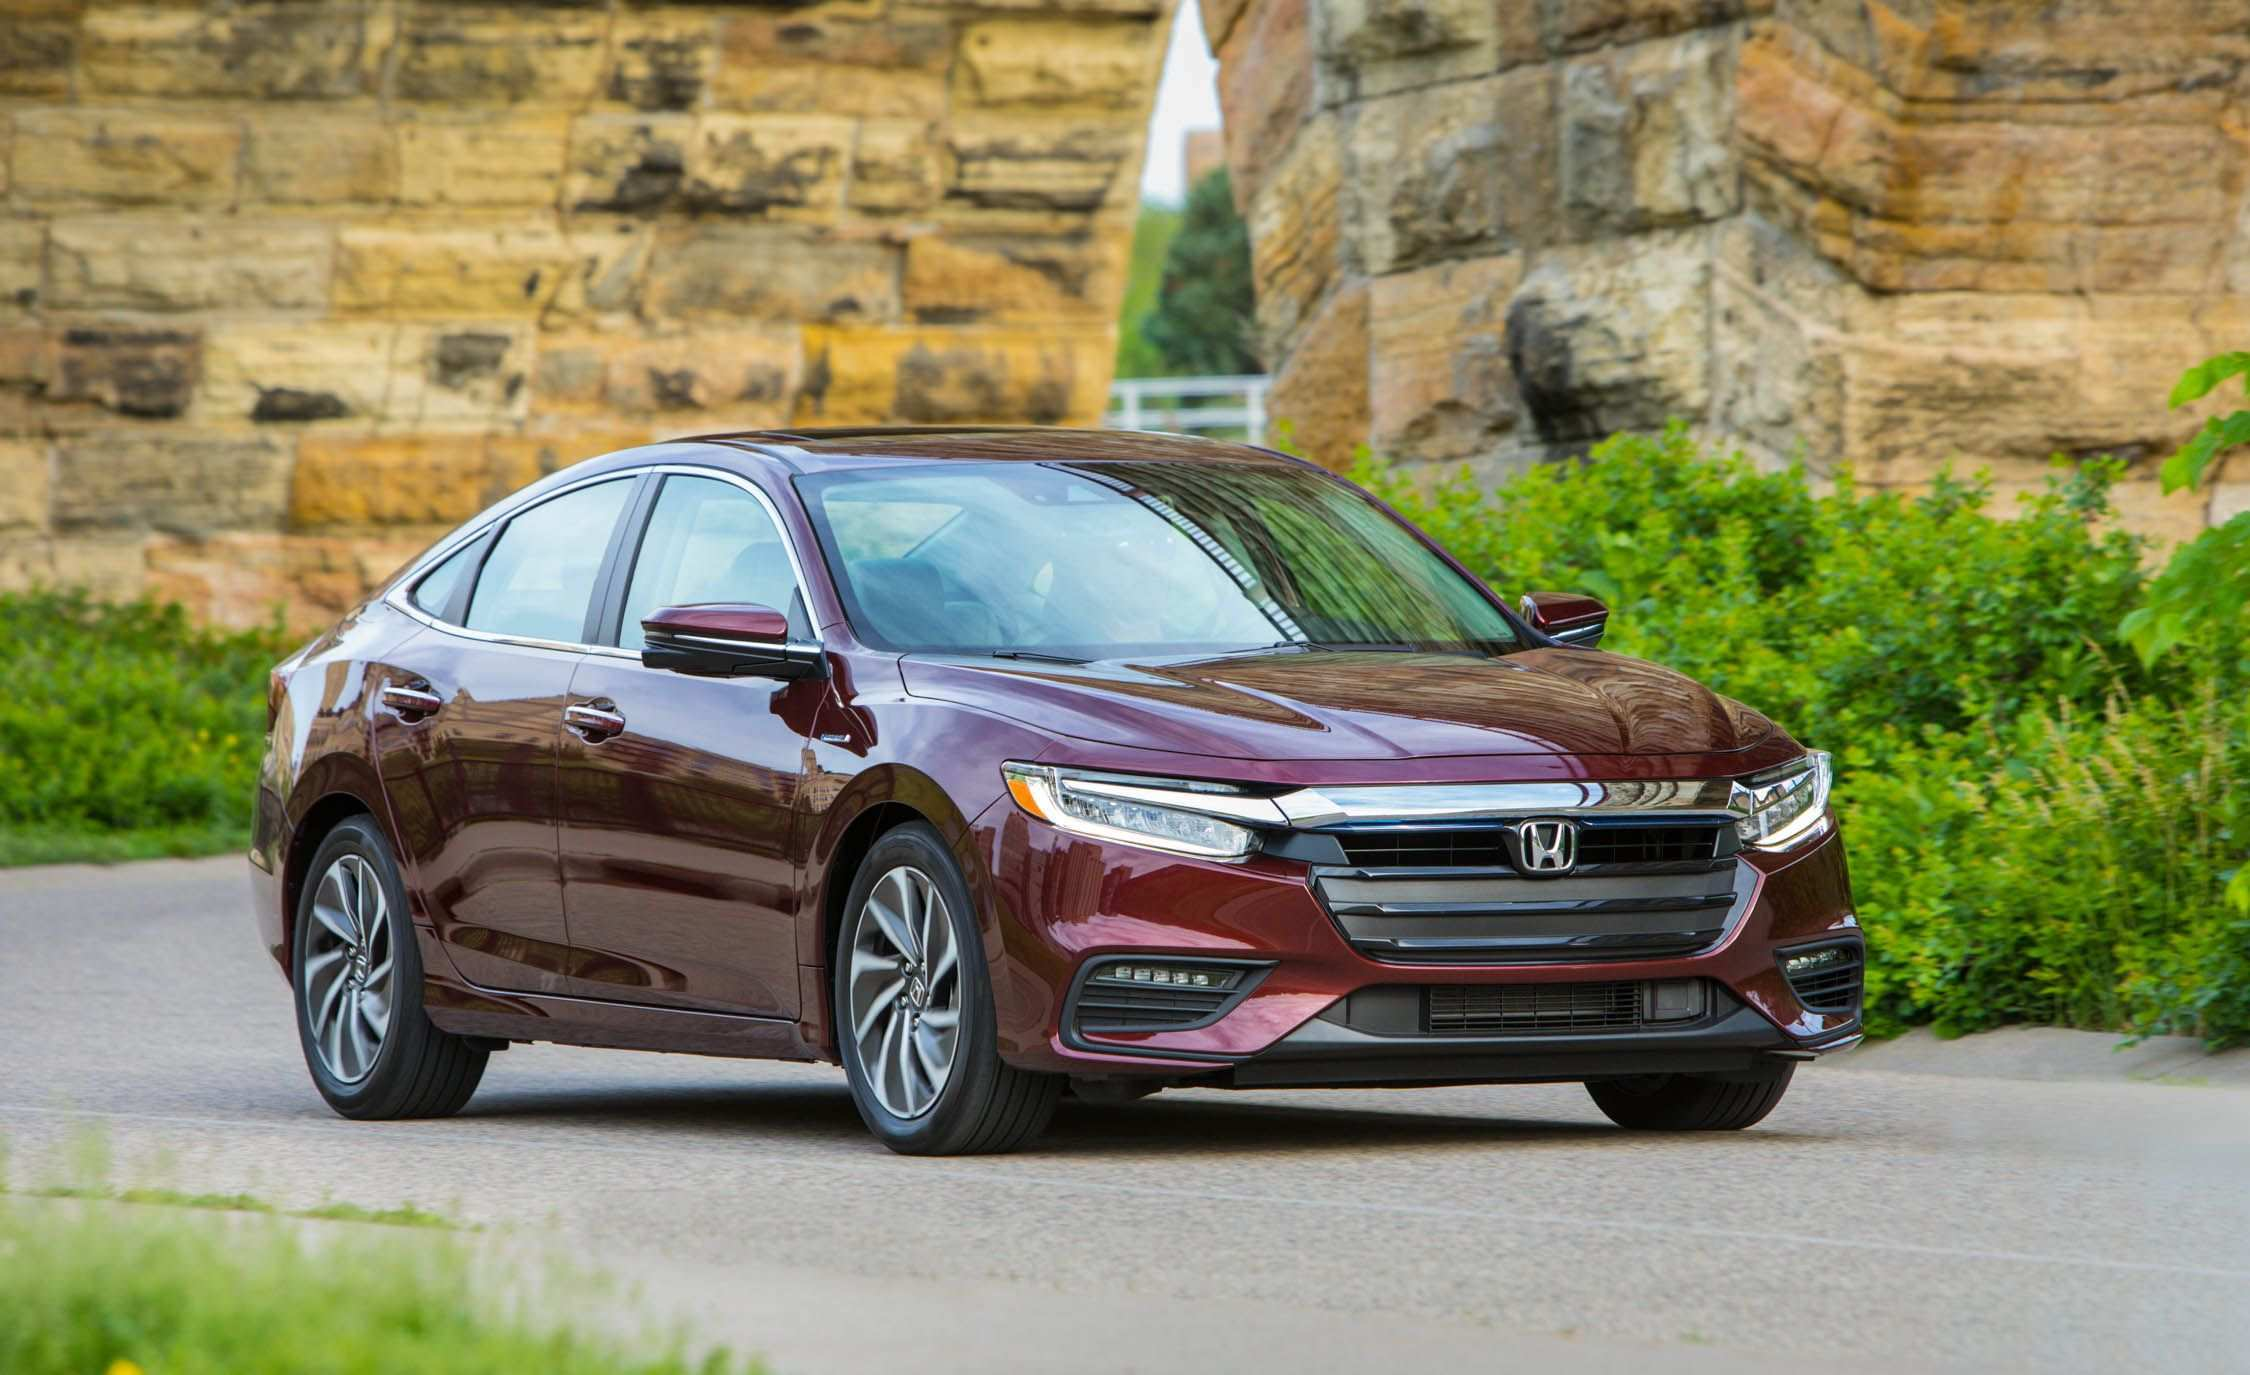 33 New 2019 Honda Insight Review History by 2019 Honda Insight Review